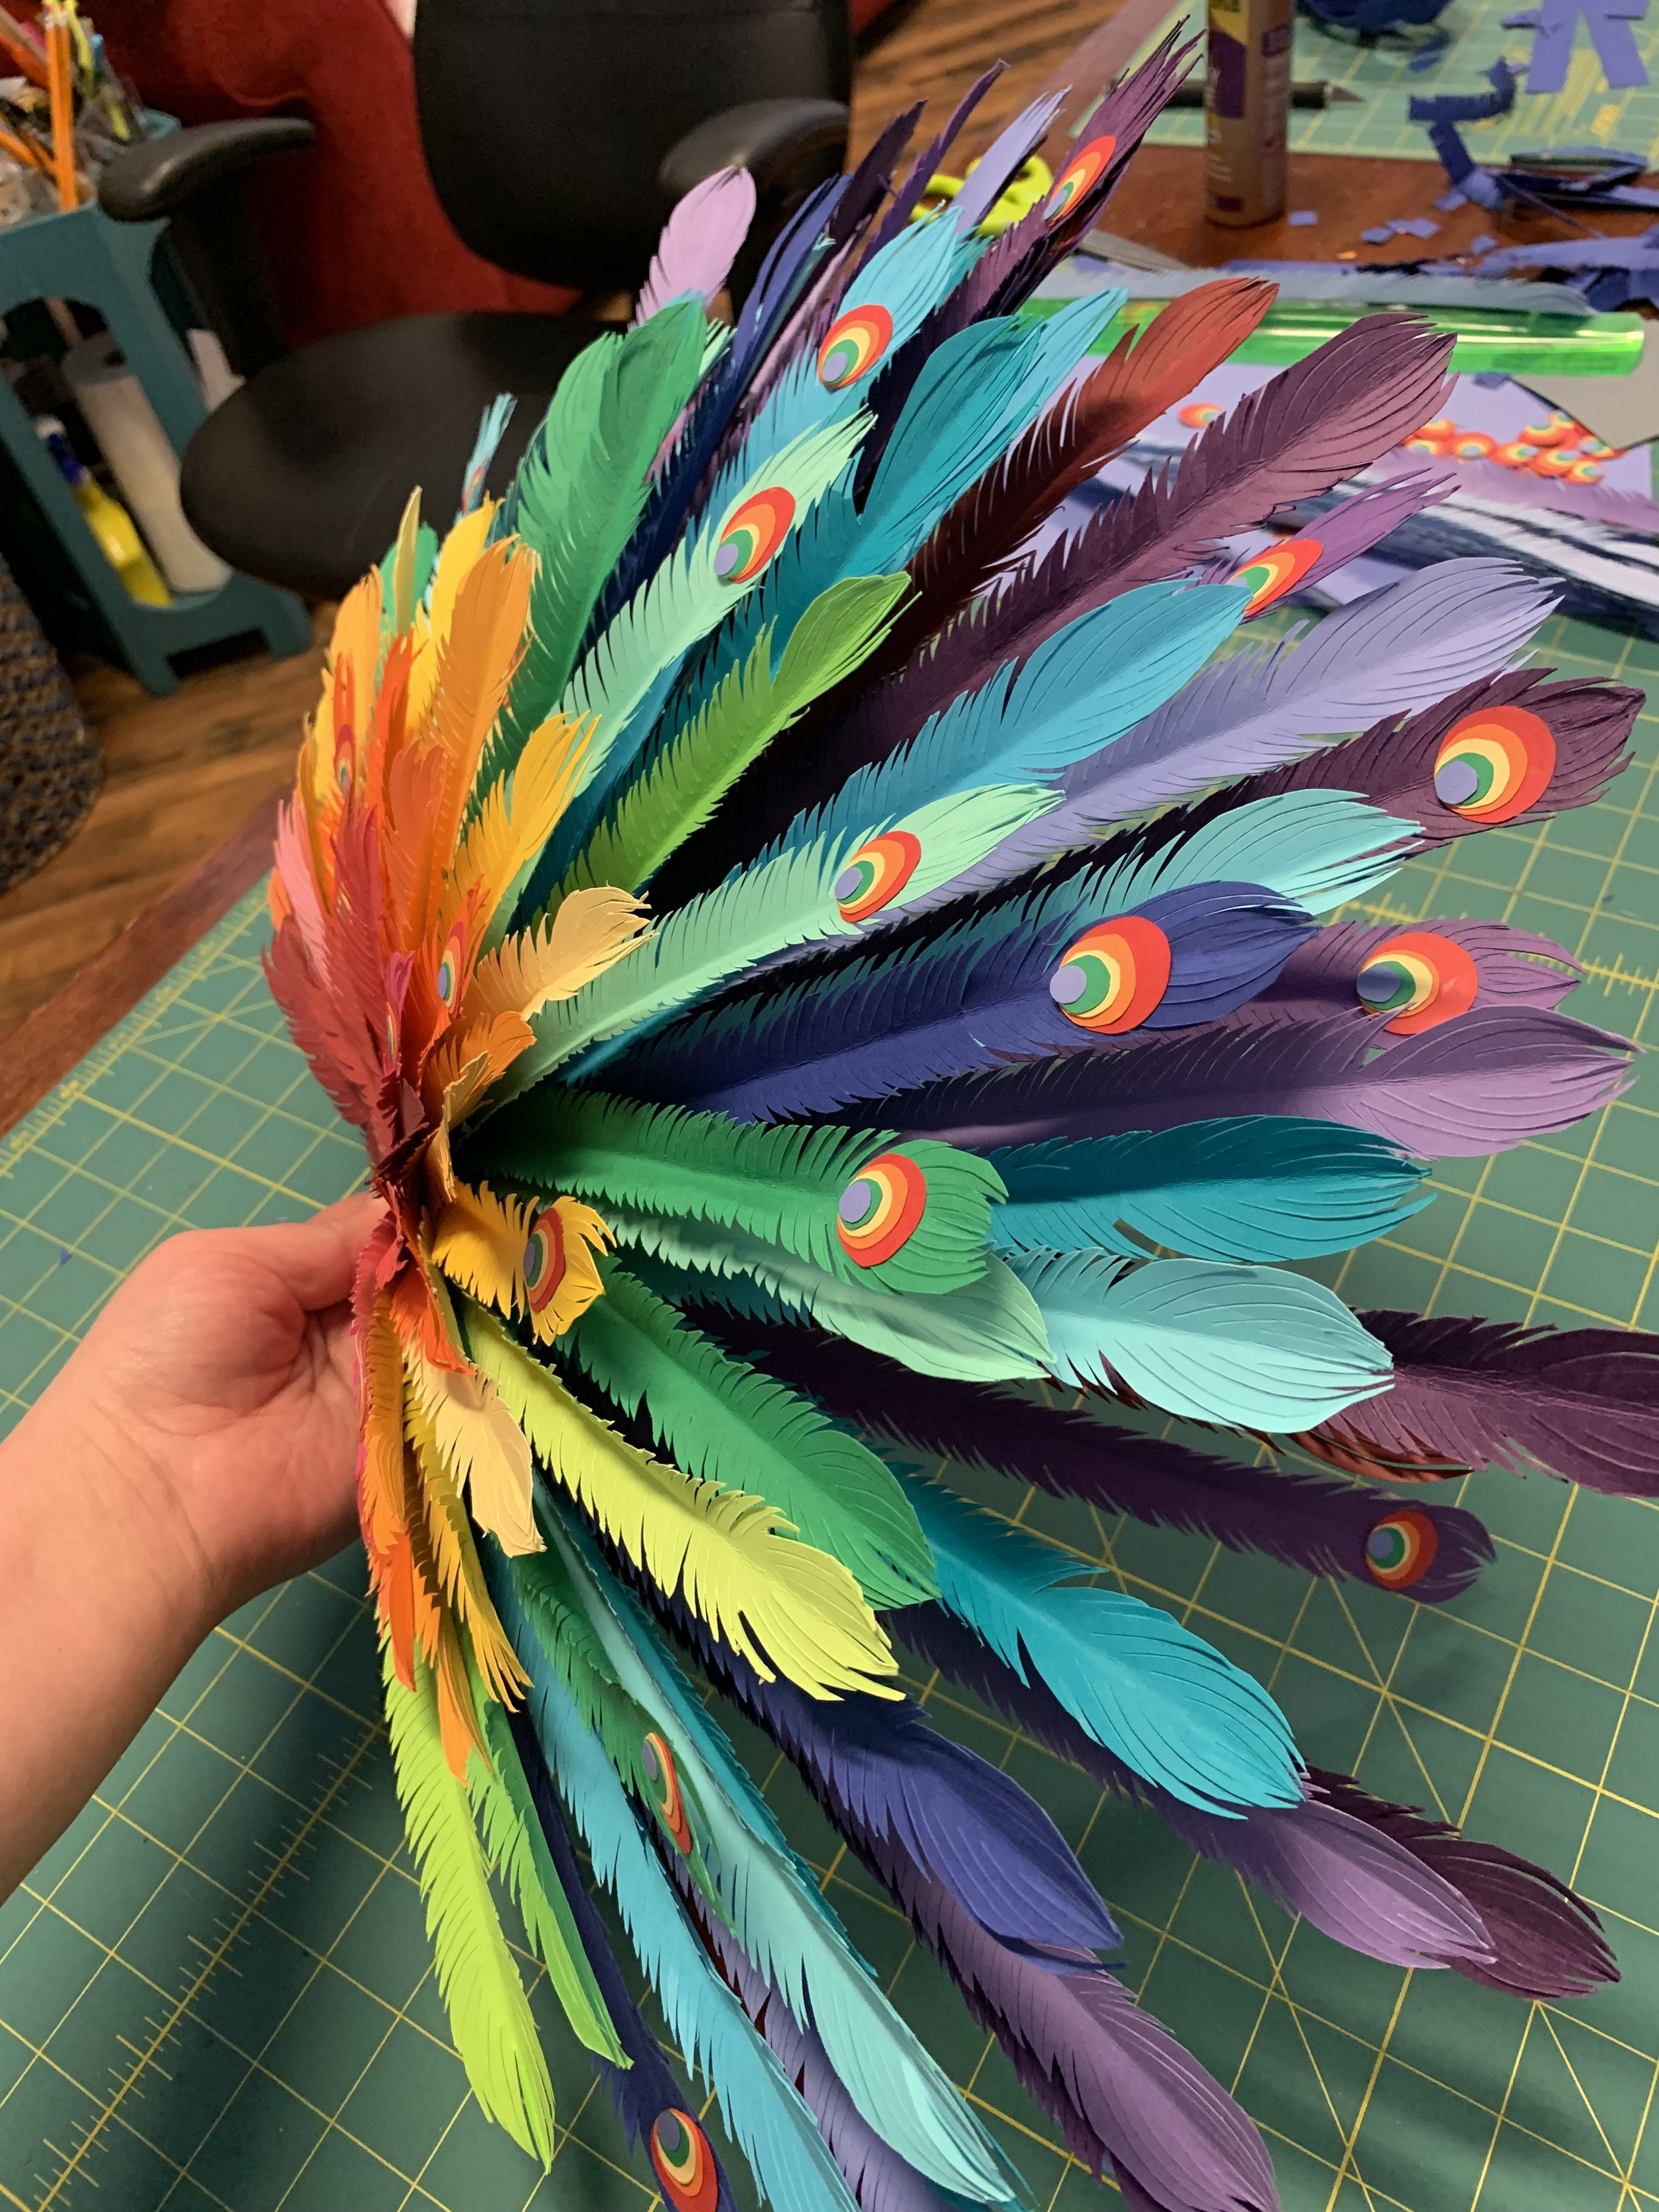 - I loved the way the feathers turned out!